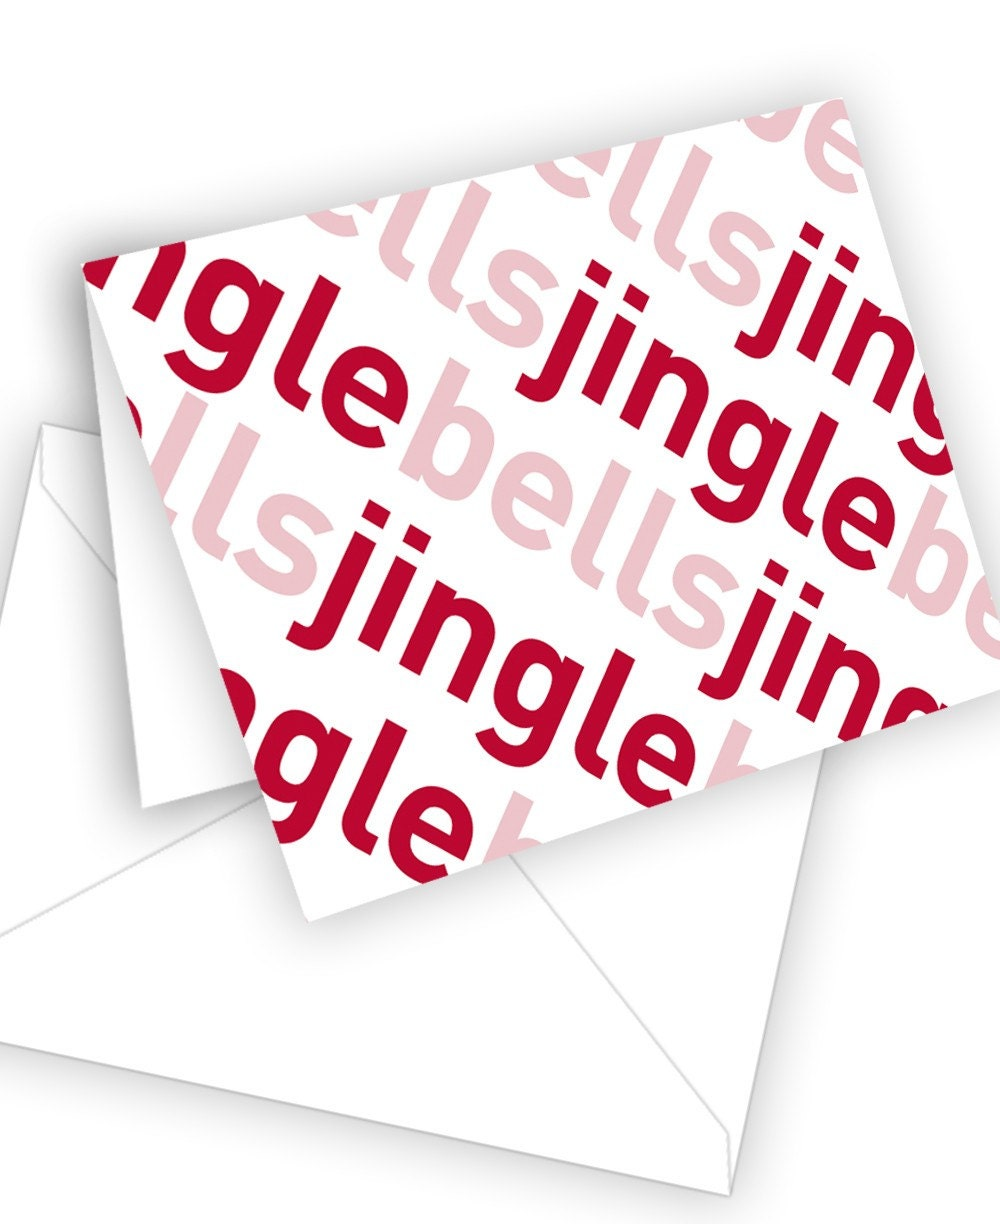 Typographic Holiday Card  Jingle Bells by theRasilisk on Etsy from etsy.com